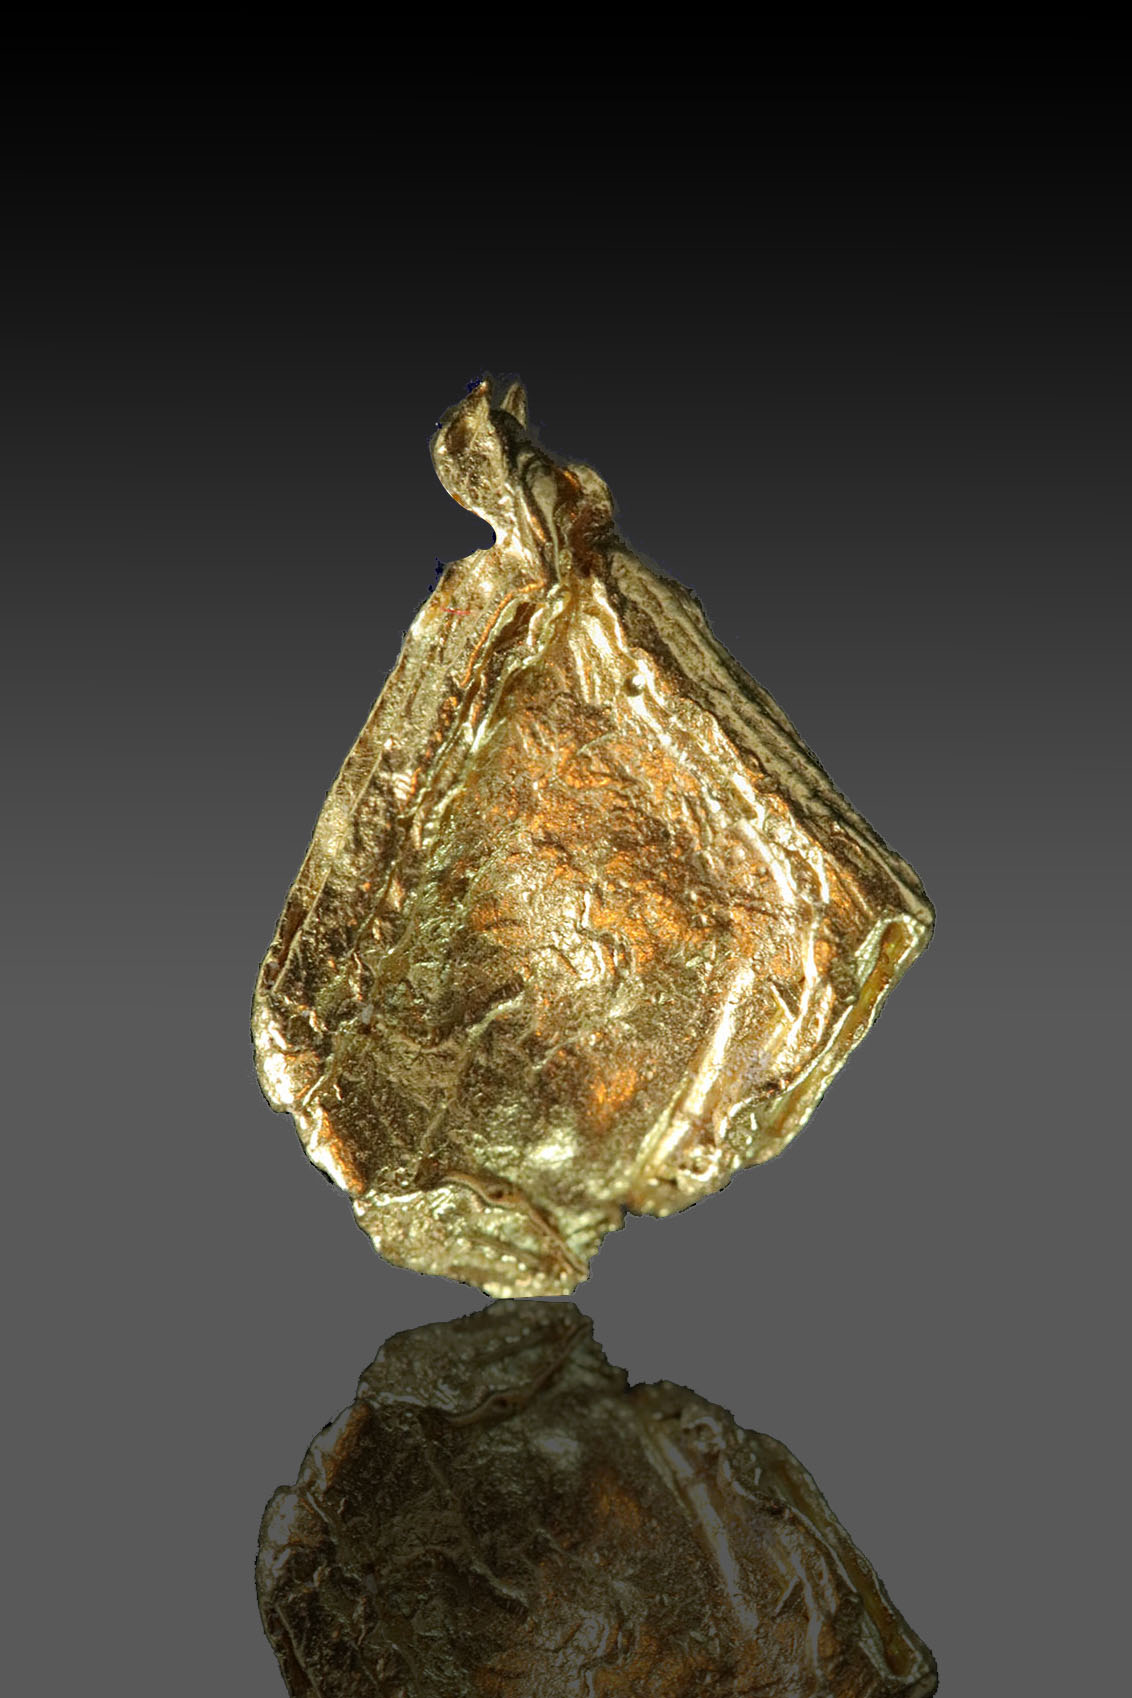 Striated Diamond Shaped Leaf Gold From the Yukon - Very rare - Click Image to Close